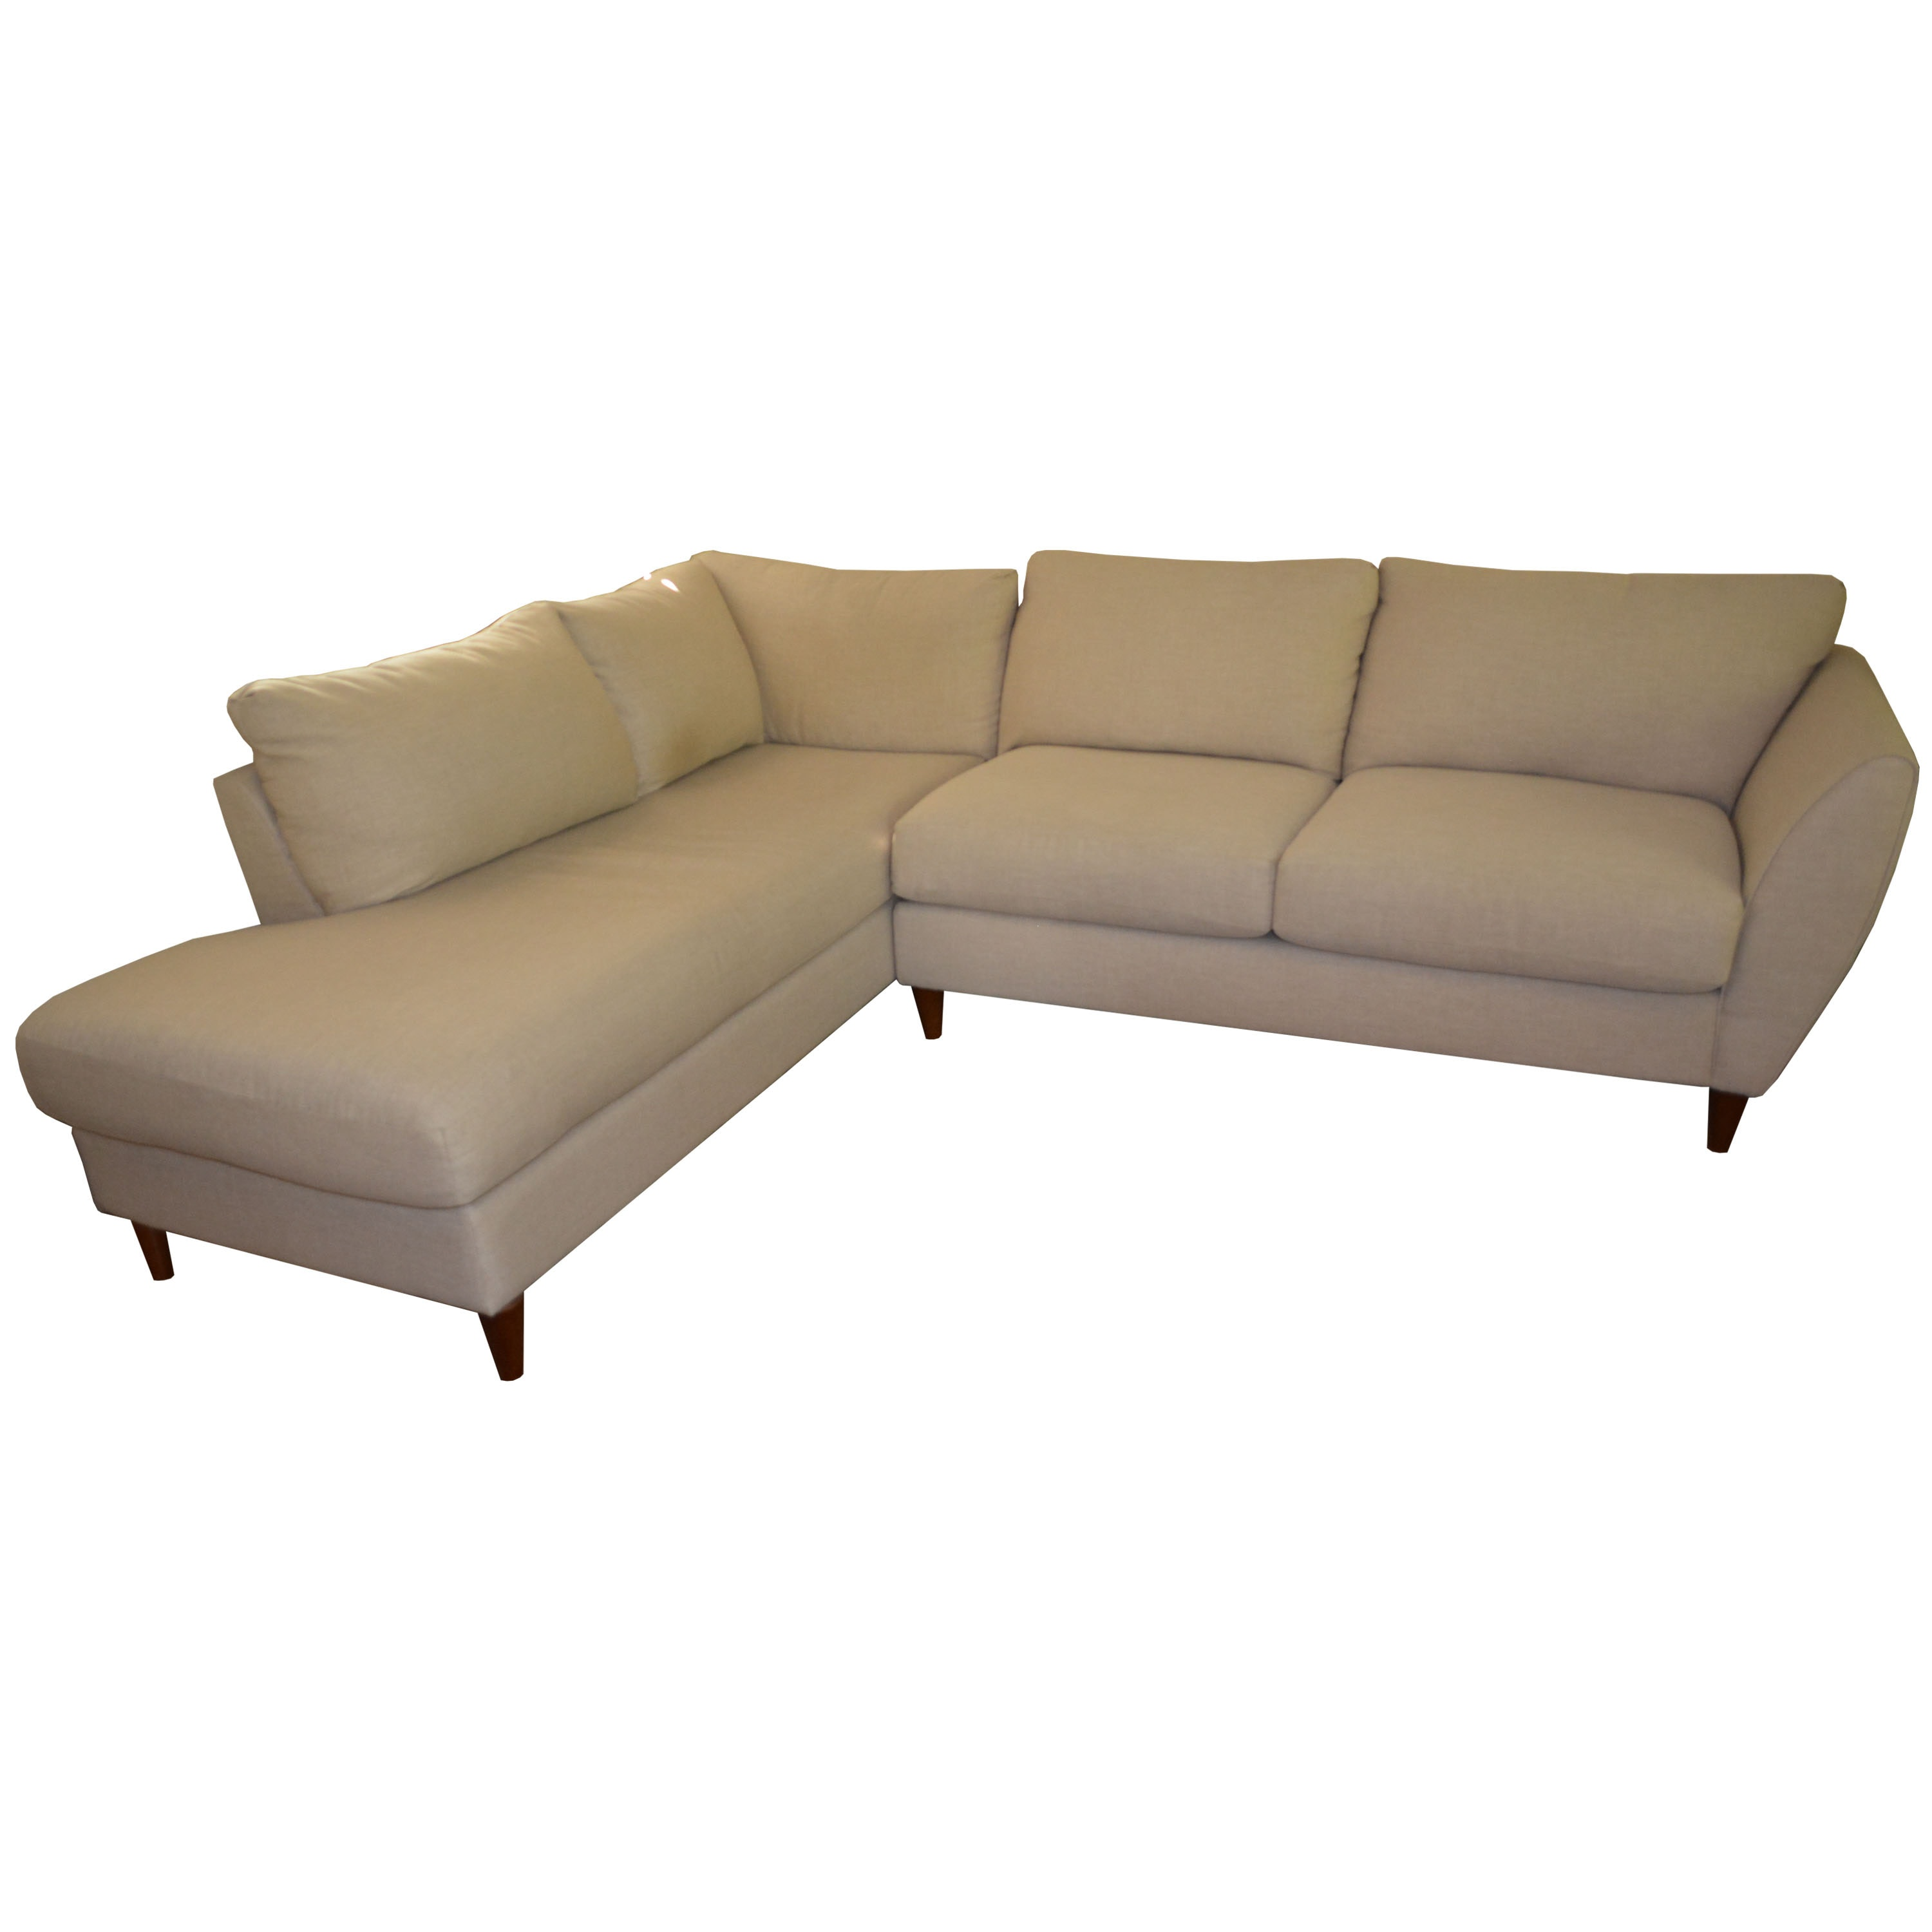 Sectional Sofa by La-Z-Boy ...  sc 1 st  Everything But The House : la sectional - Sectionals, Sofas & Couches